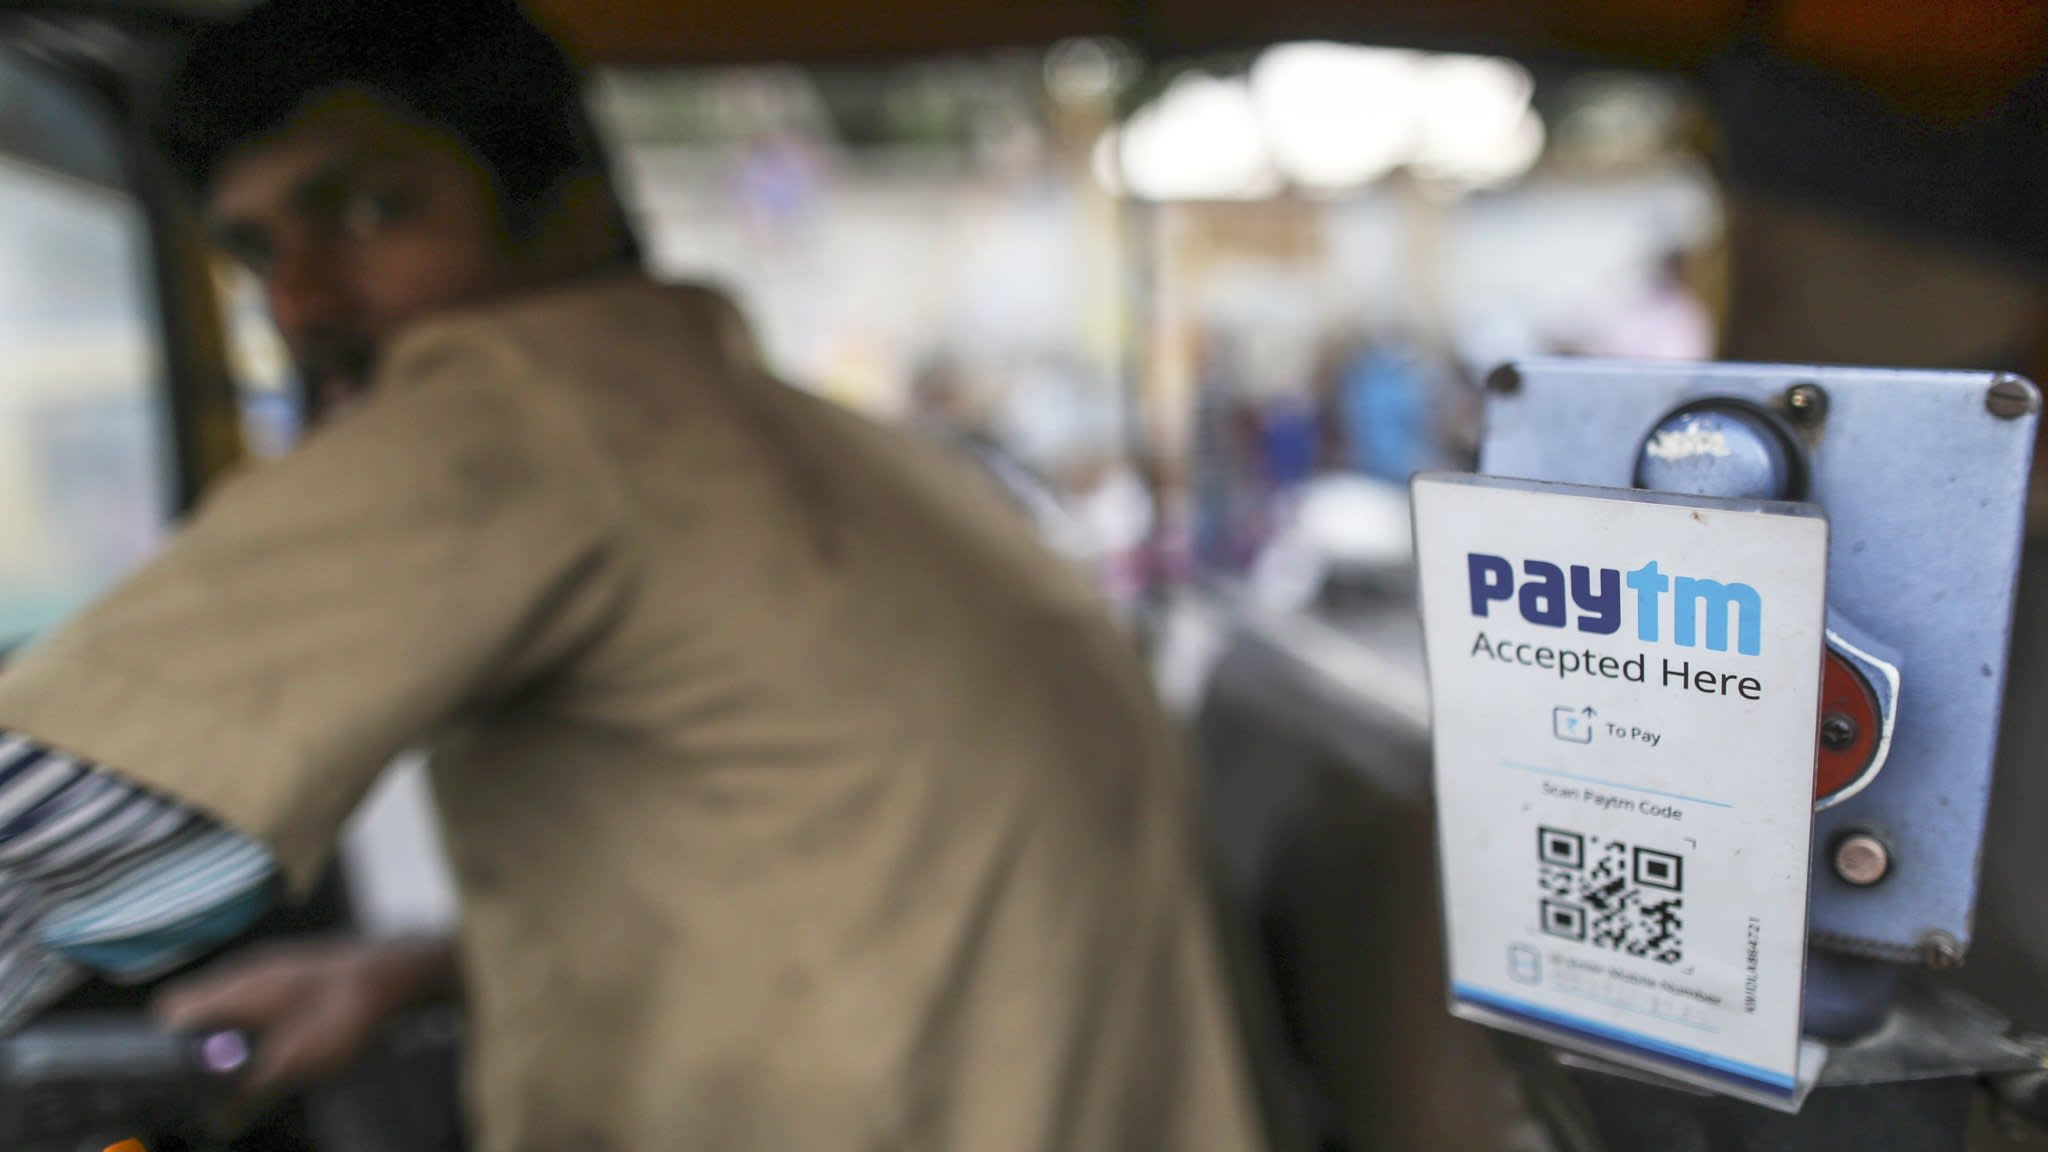 Paytm may need more than a Warren Buffett vote of confidence